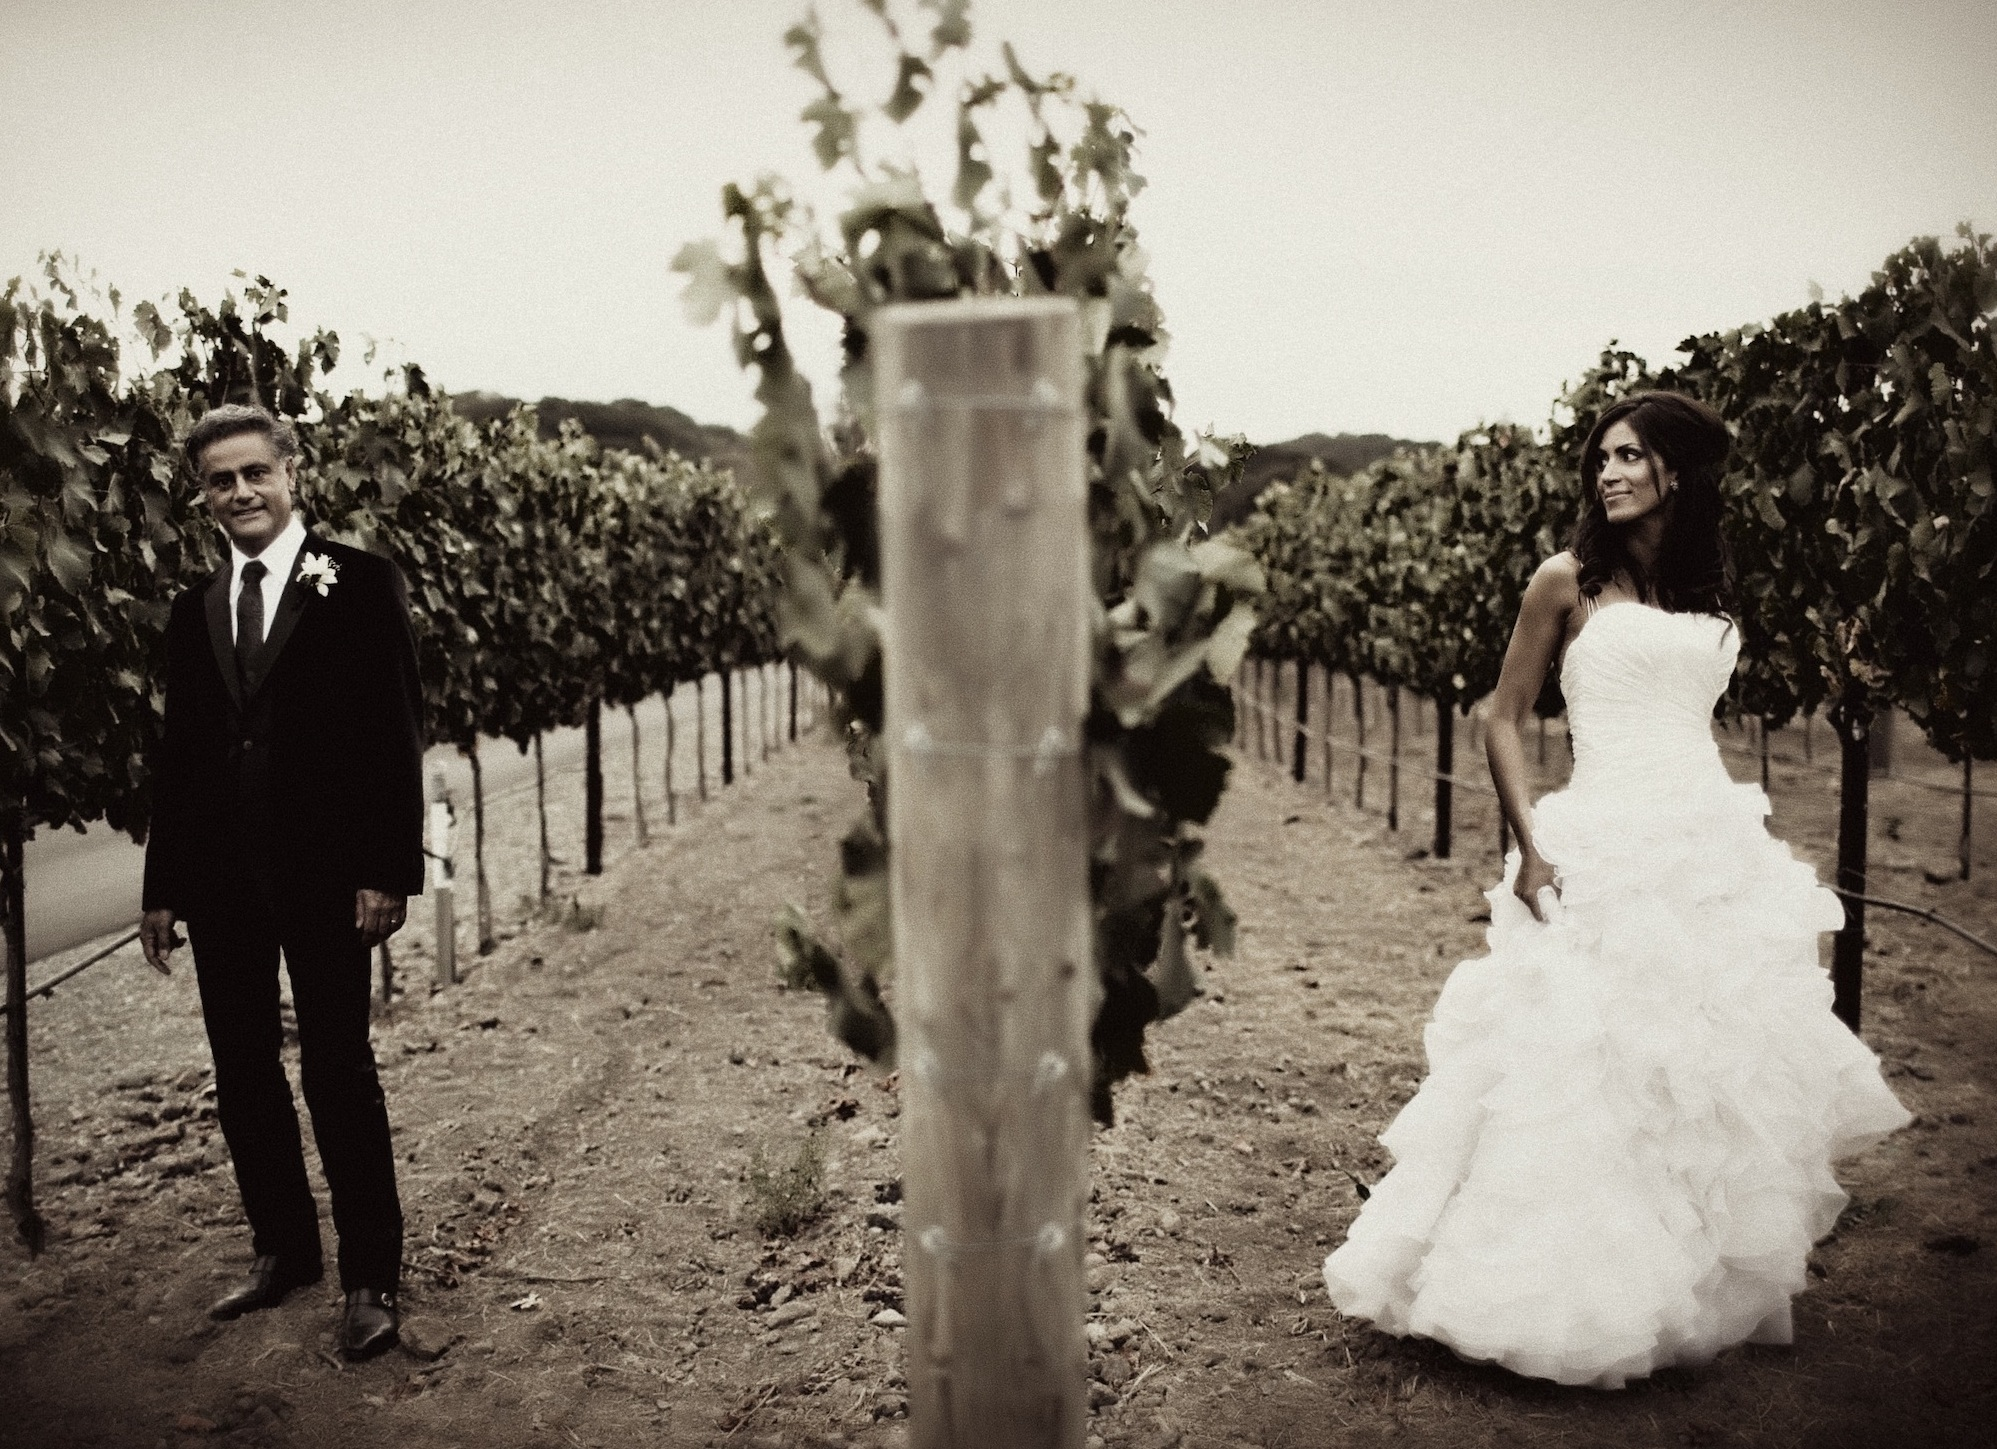 Unique Wedding Attendant Gifts : Attendant Gifts for Wine Lovers, Wedding Favors for Wine Lovers ...